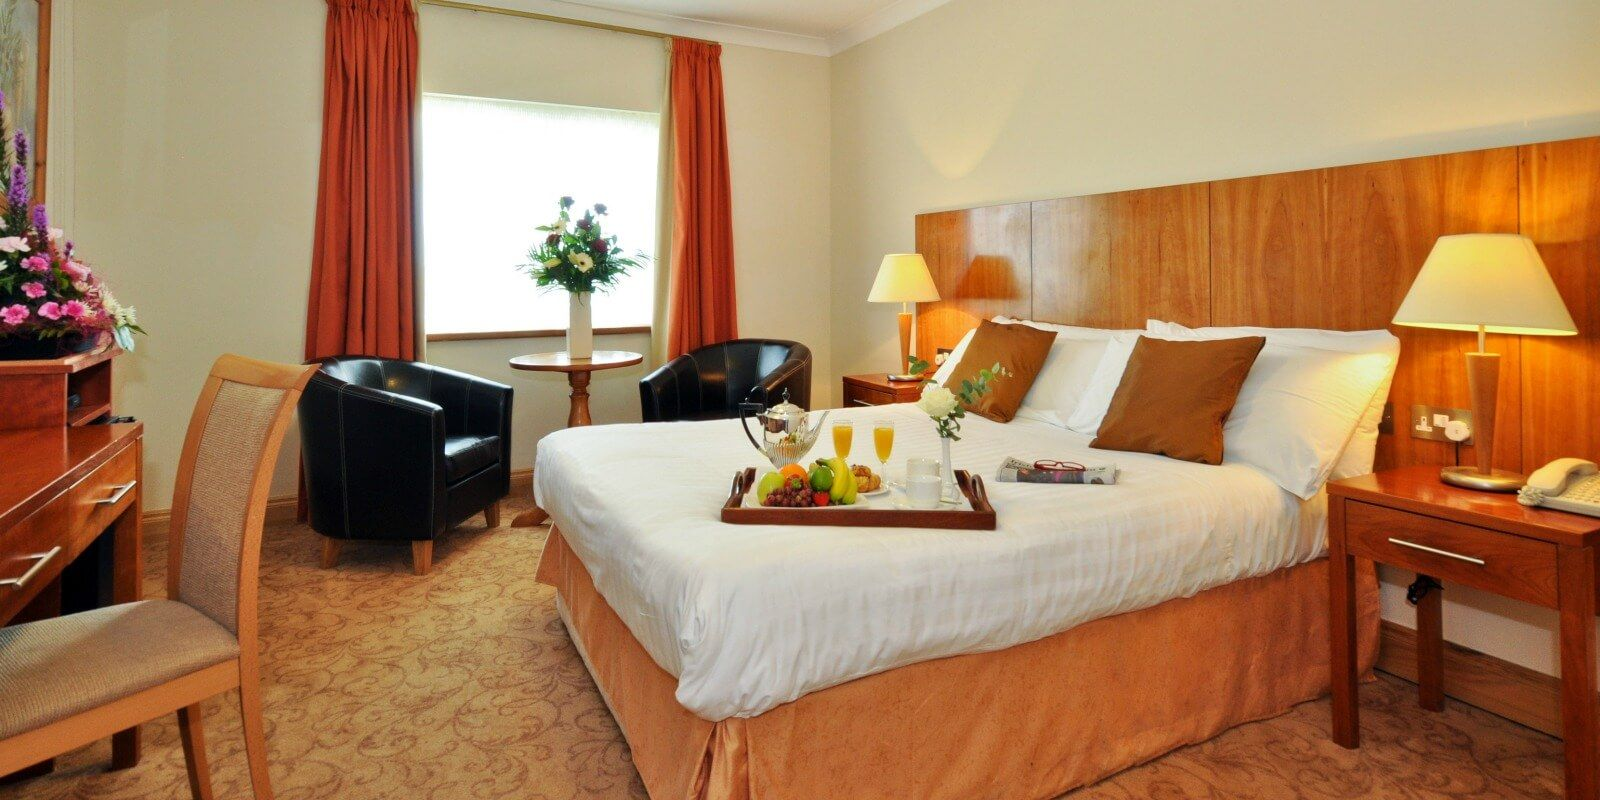 Double Room at Broadhaven Bay Hotel